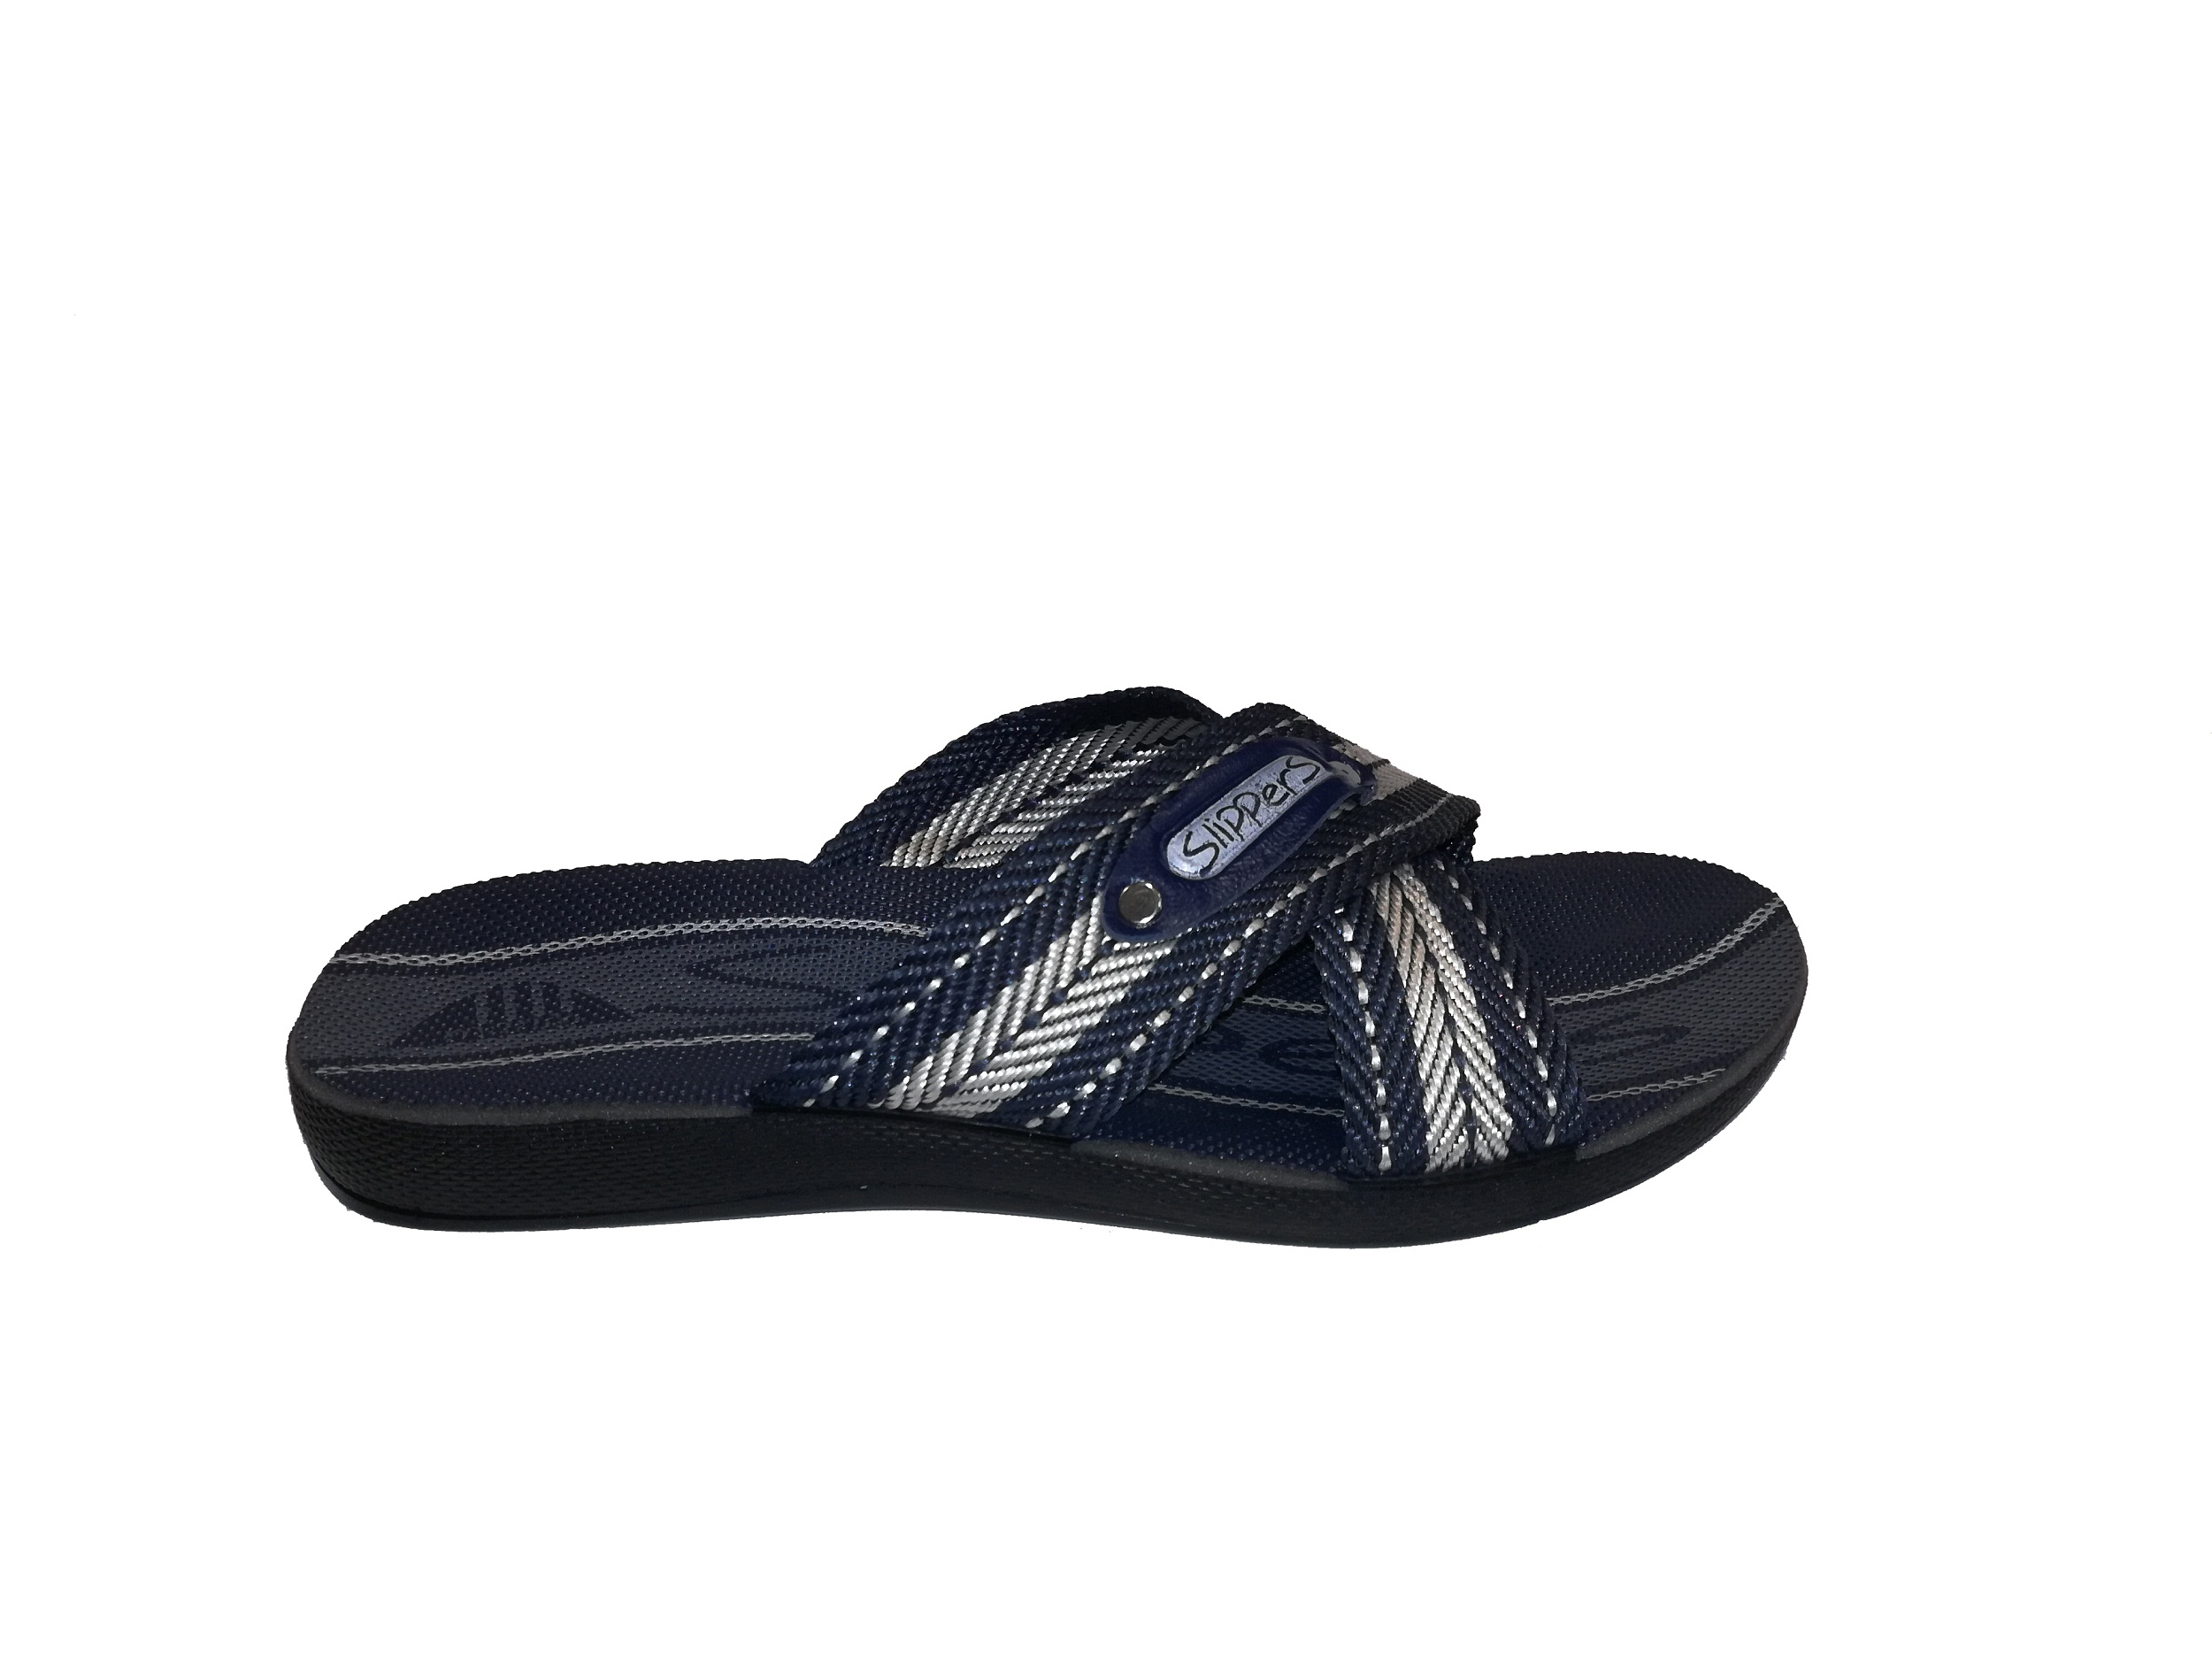 81730 Mbl SLIPPERS NAVY